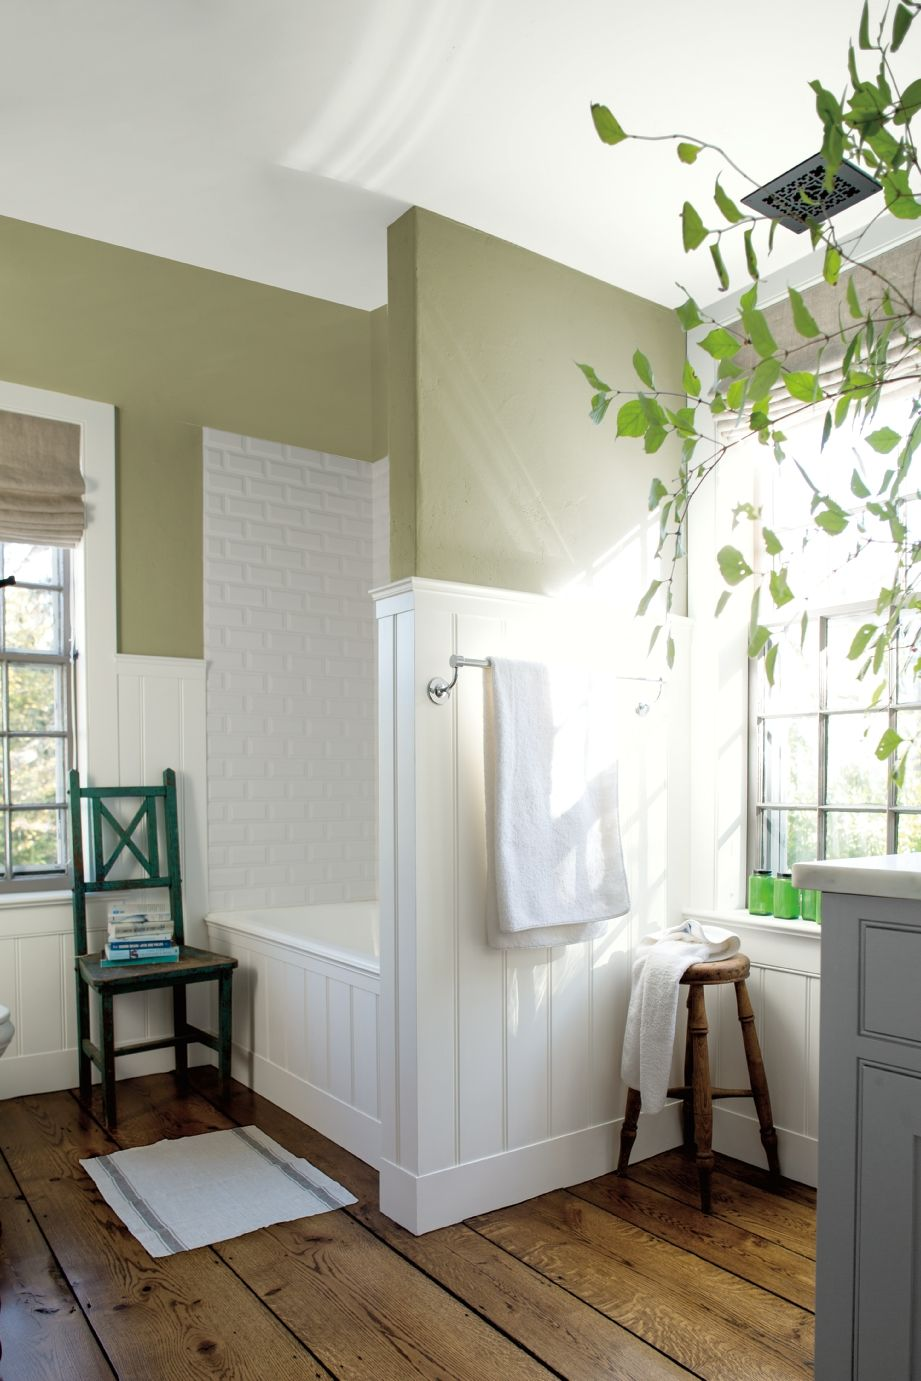 about the williamsburg paint color collection in 2020 on how to choose interior paint color scheme id=23291